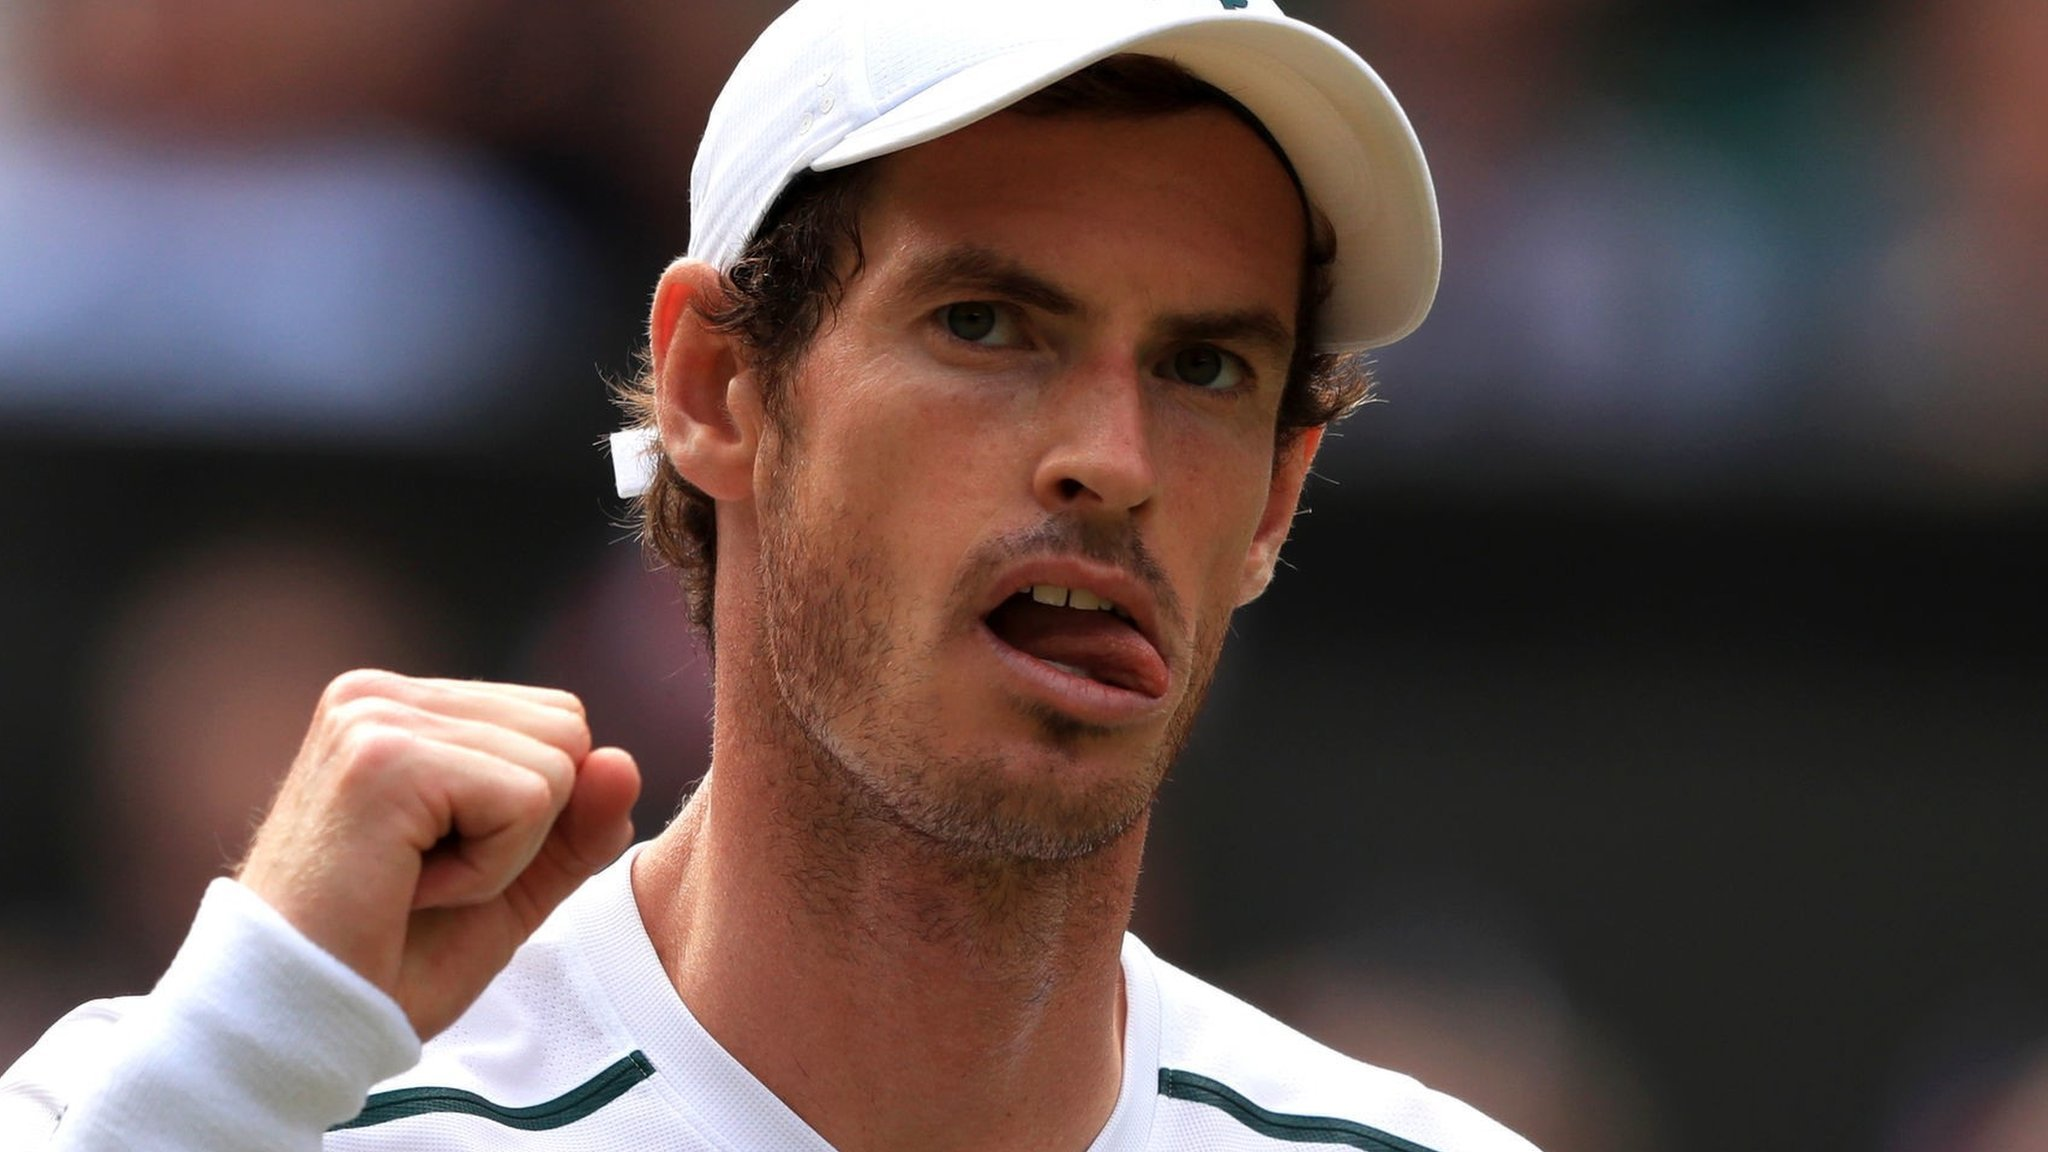 Andy Murray: Winning more Grand Slam titles 'still possible'